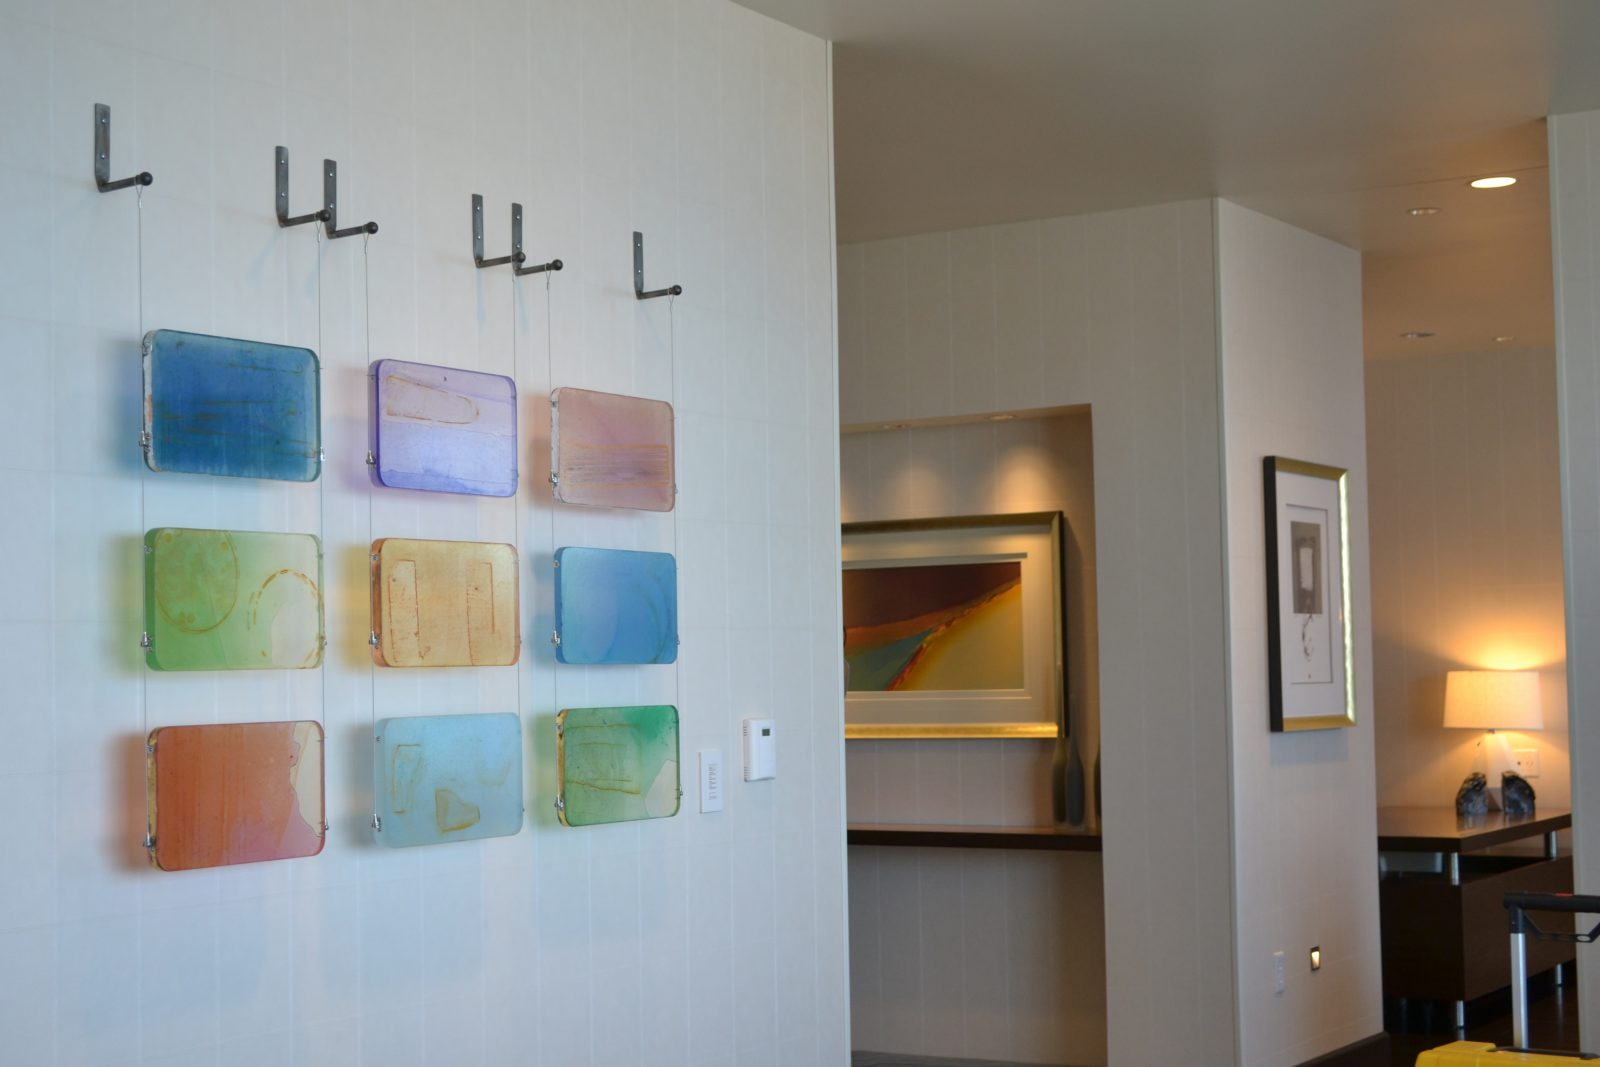 different pieces of artwork and framed paintings on the wall of a hotel room